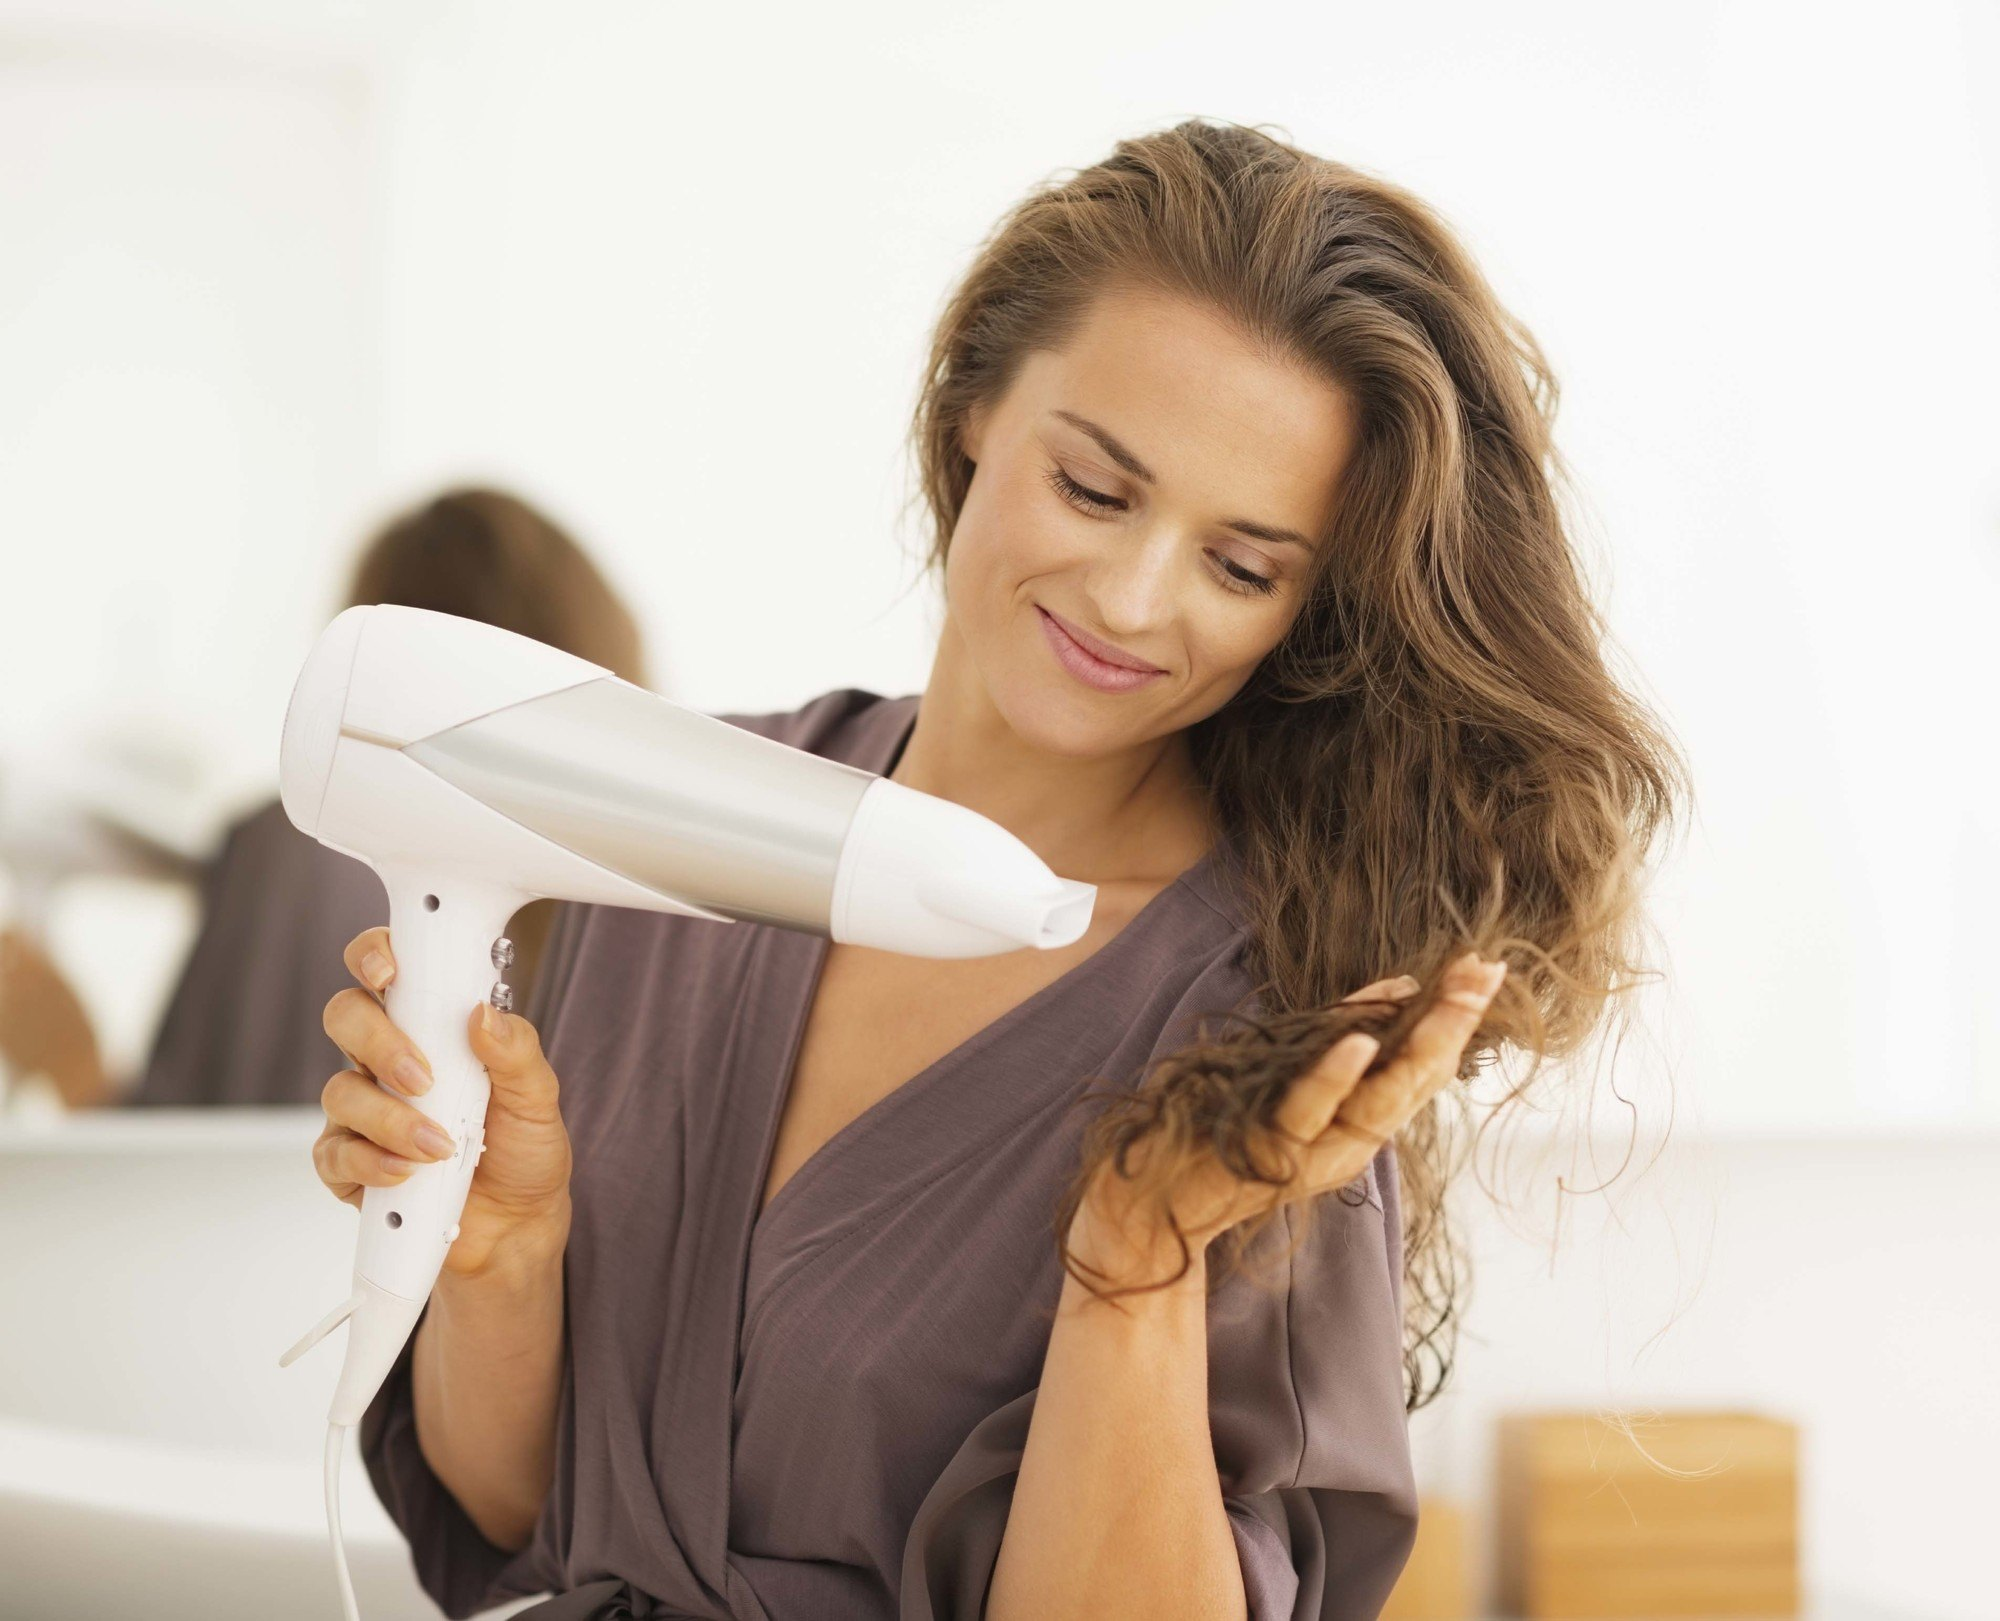 Flat hair solutions woman with hair dryer drying brunette hair and smiling